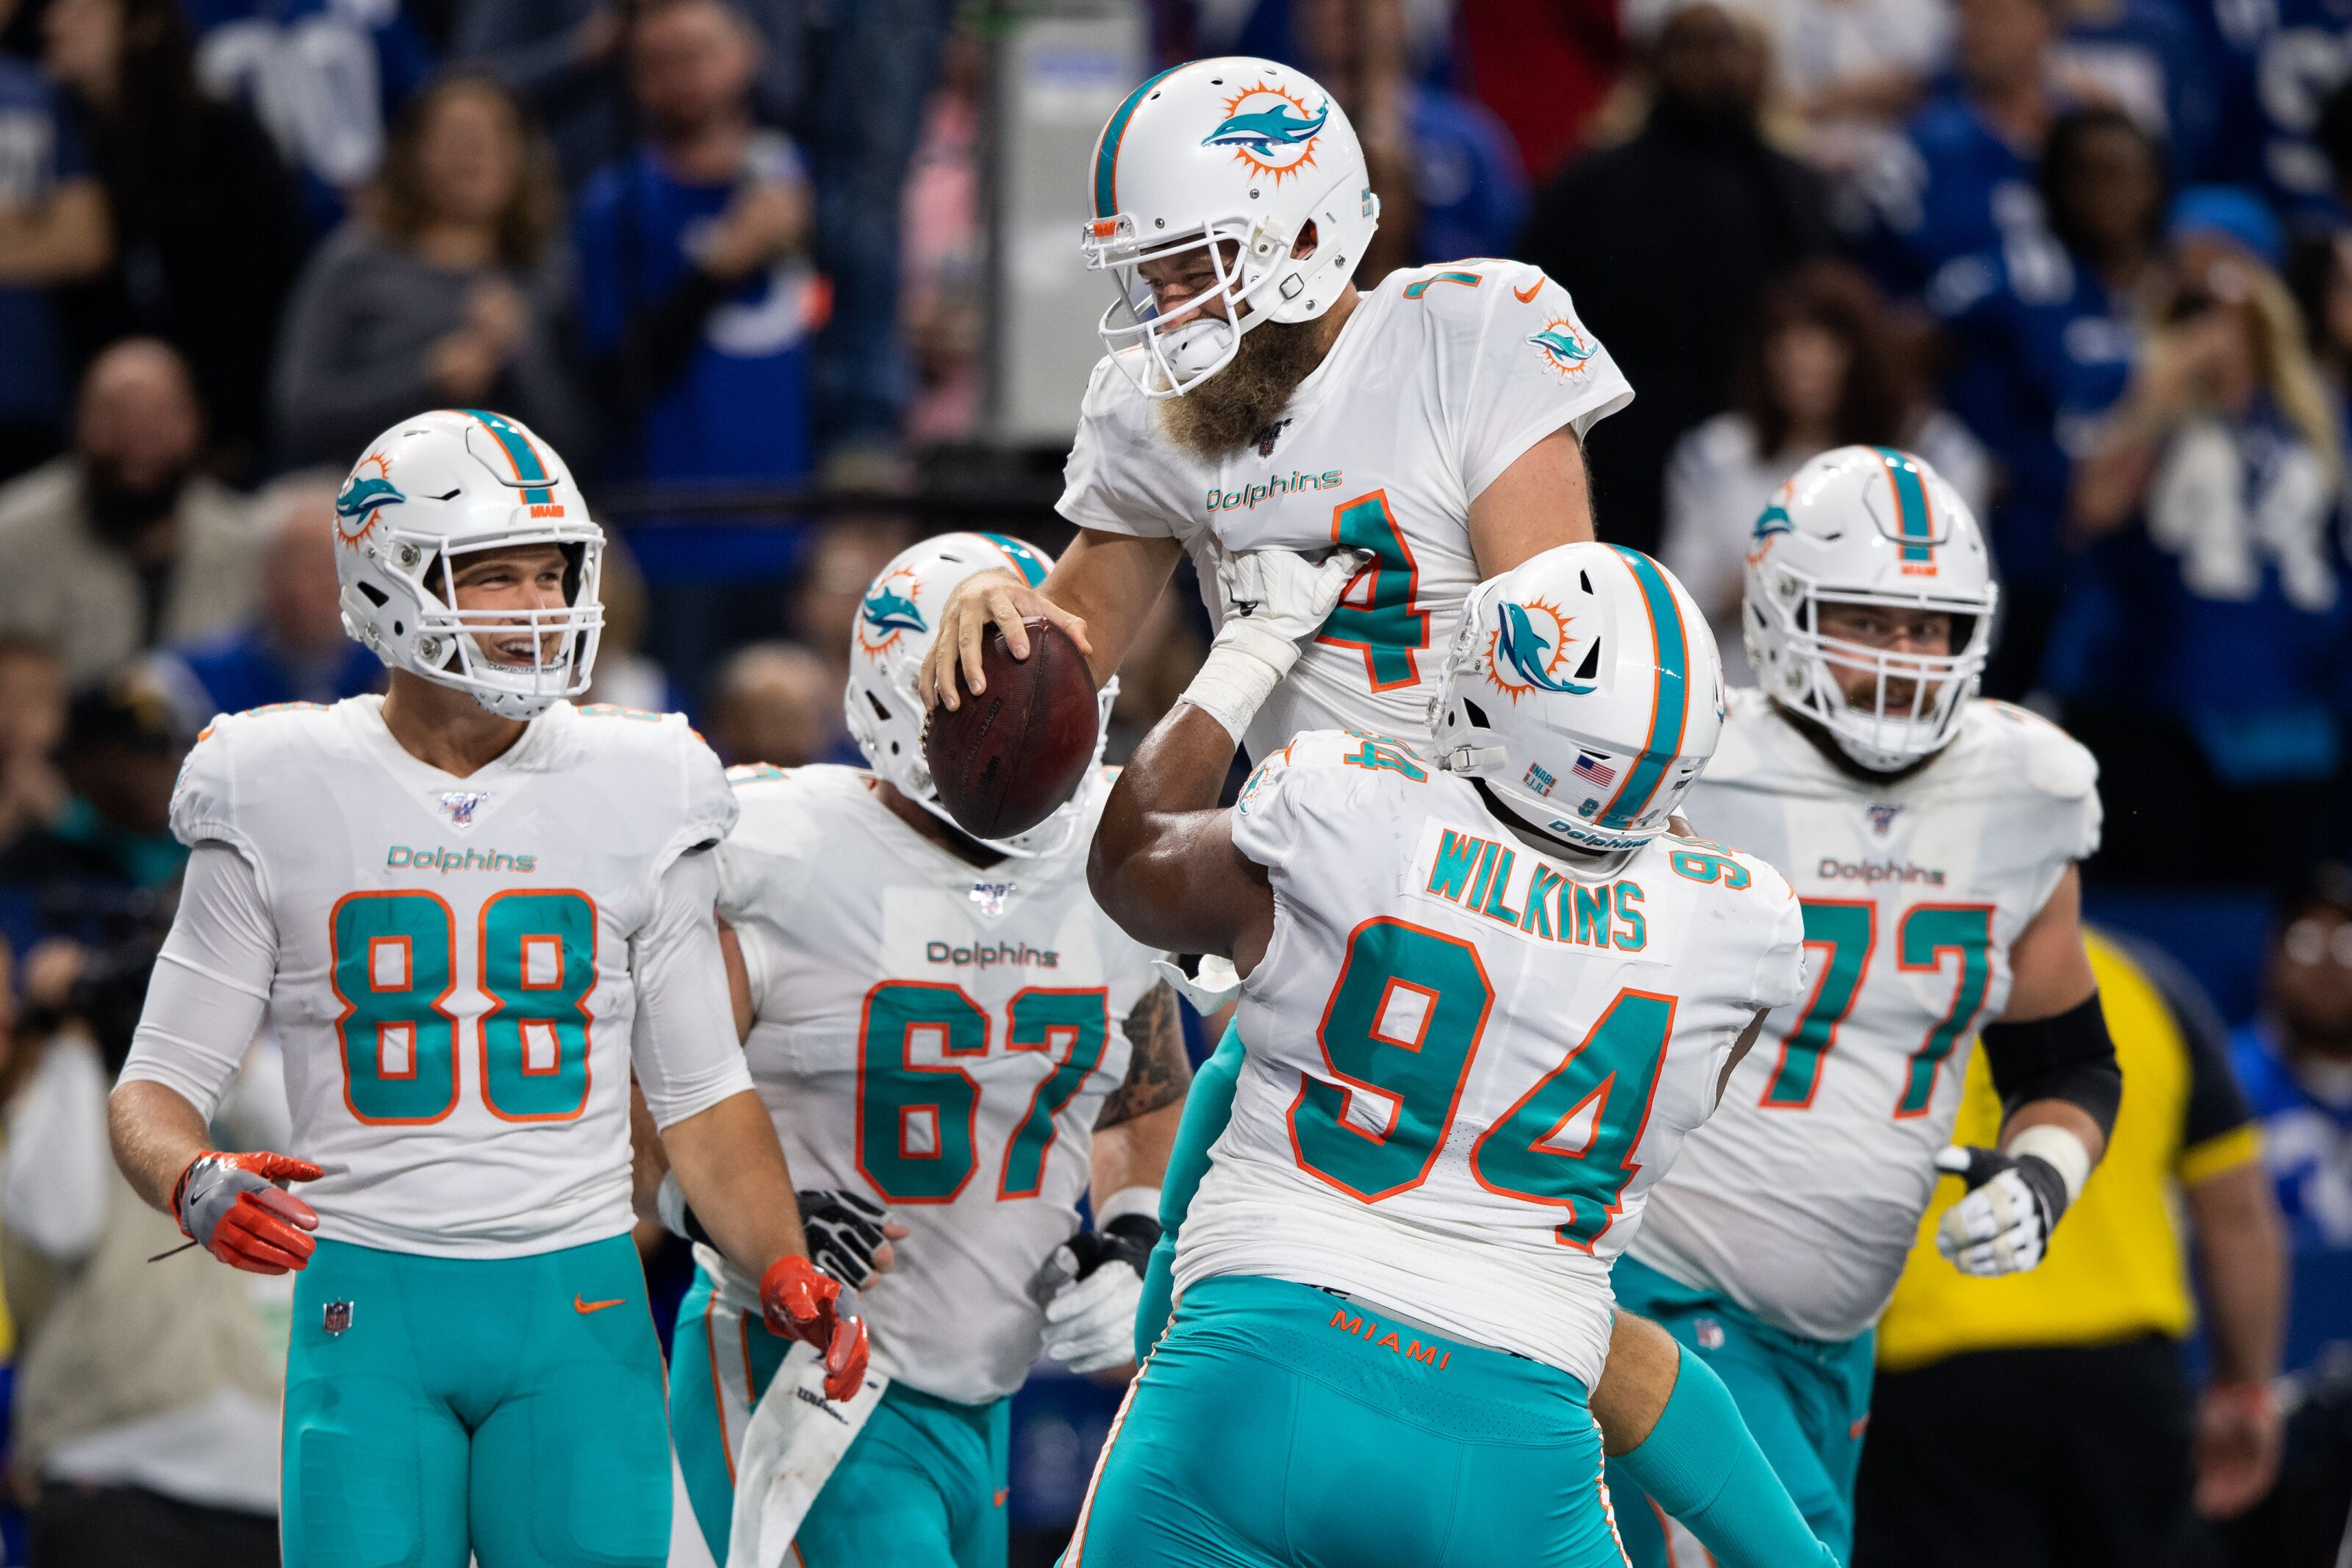 Miami Dolphins can't be called tankers anymore